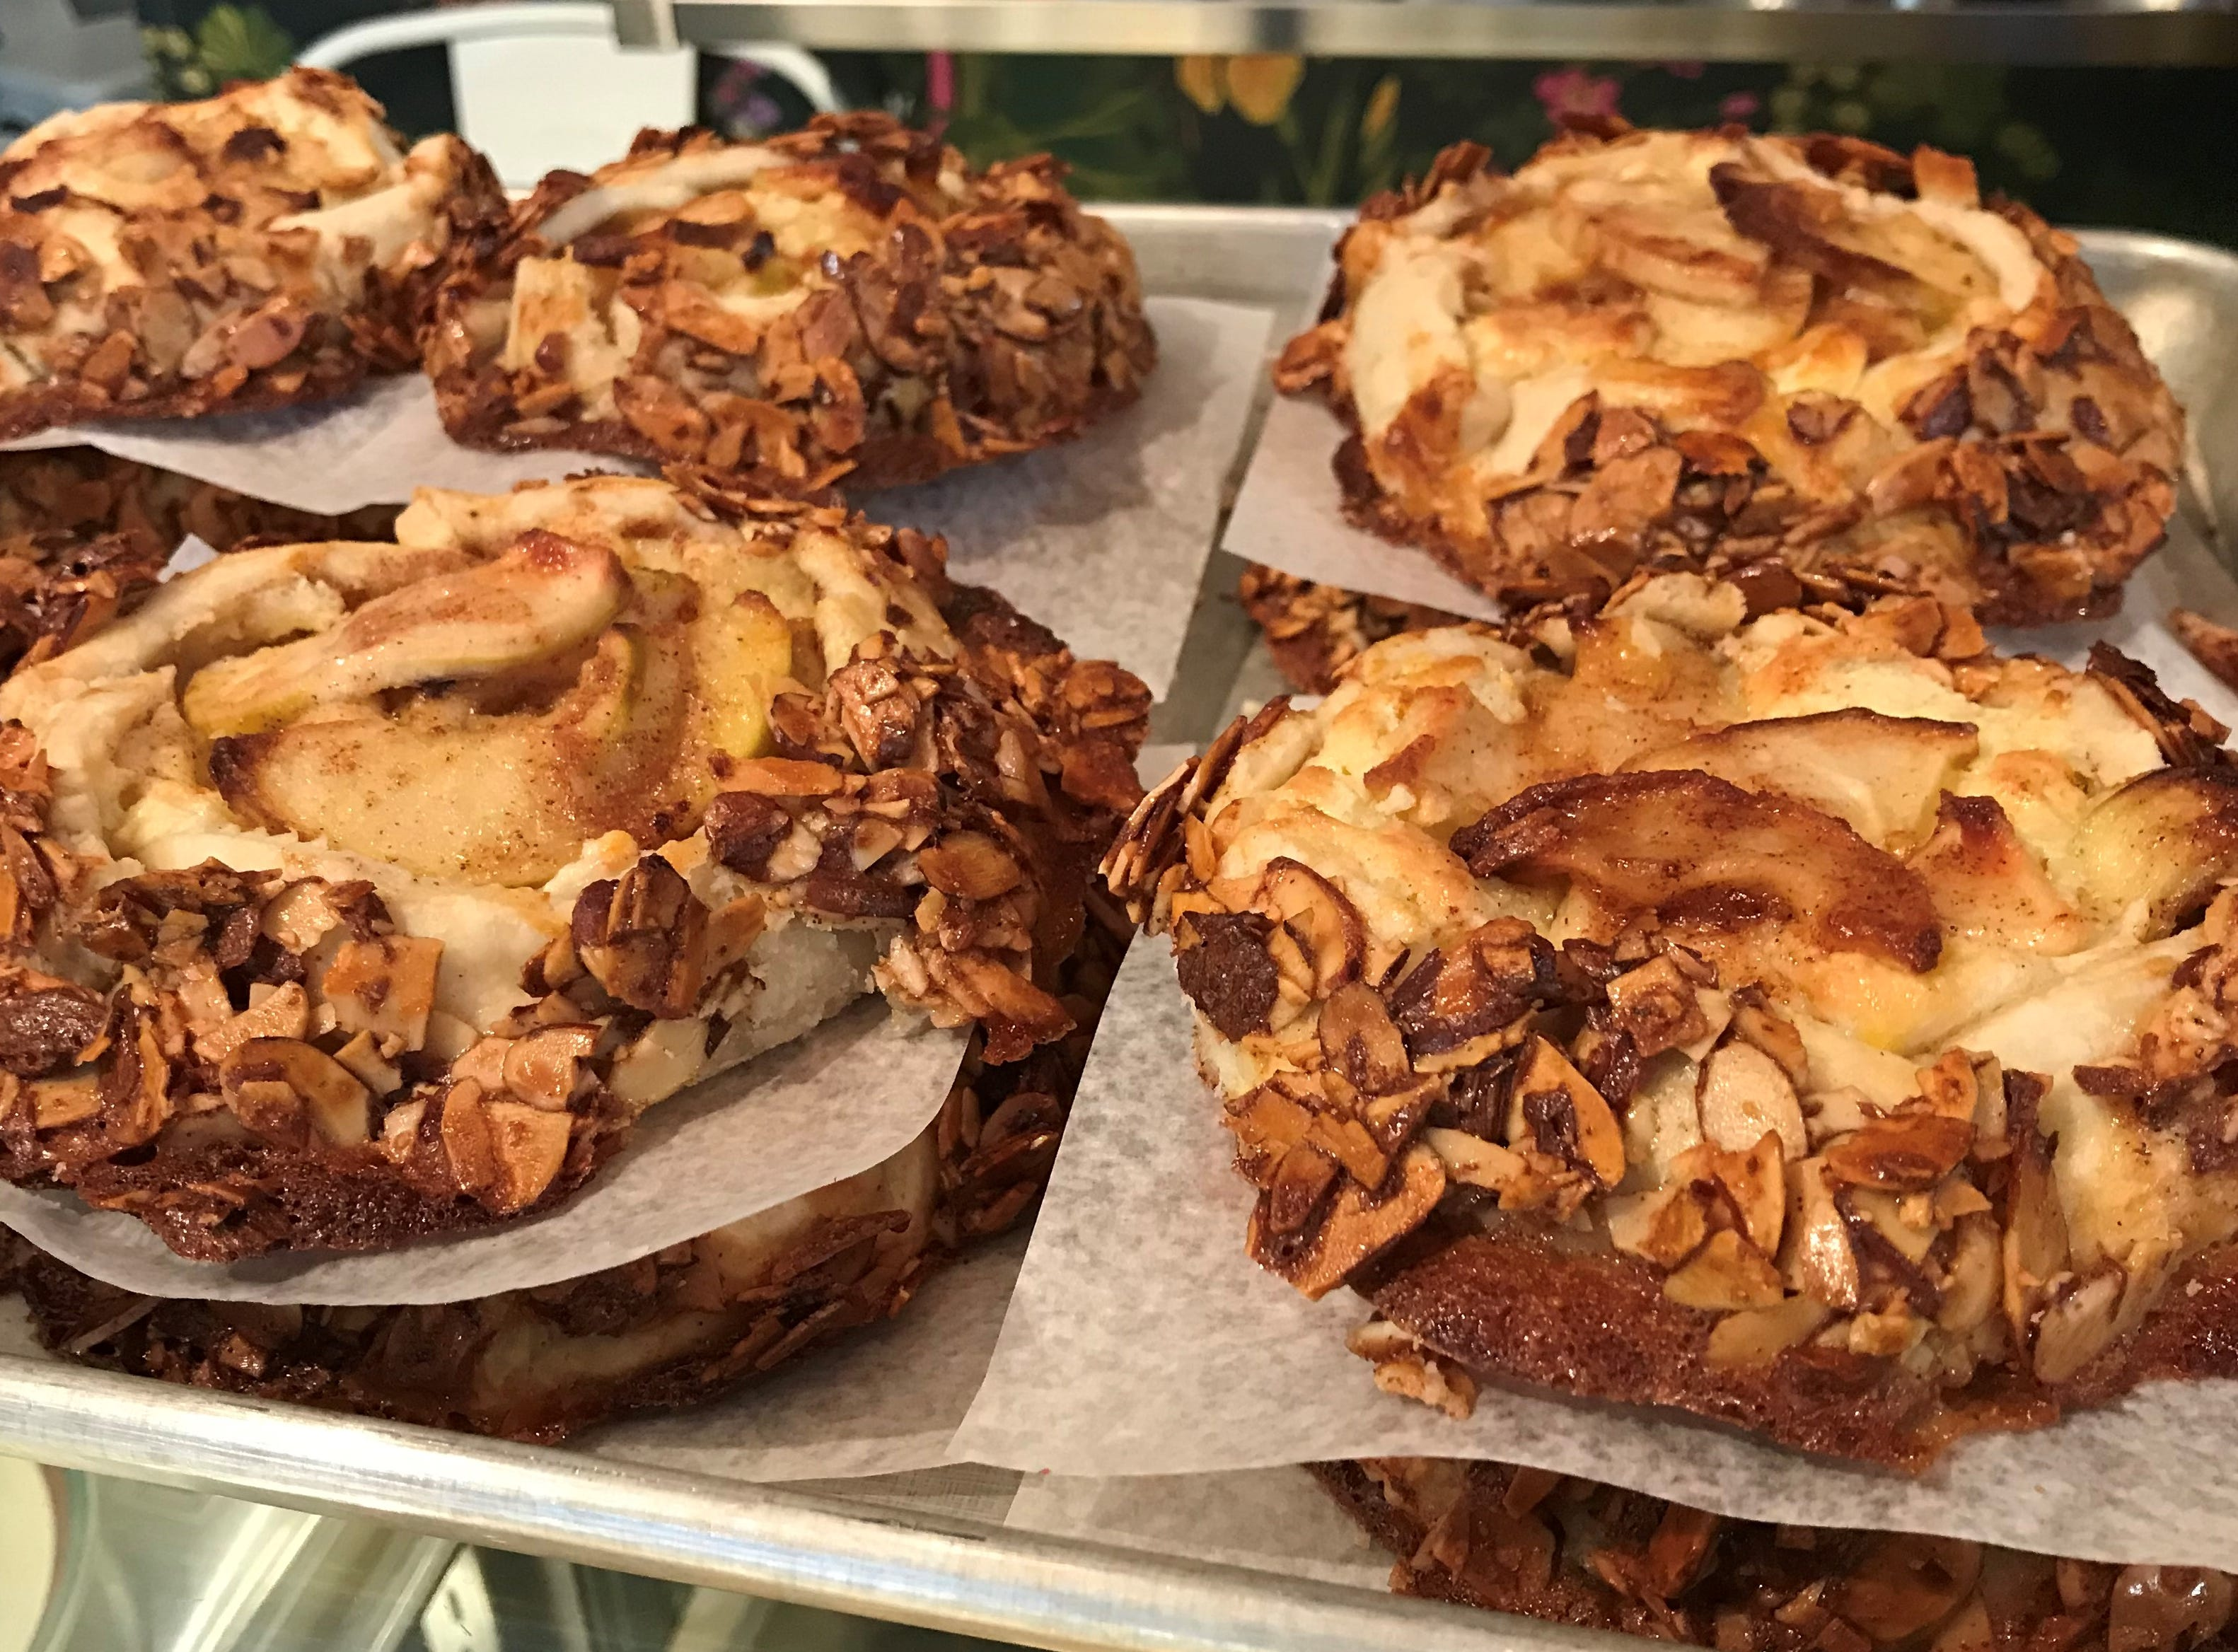 Apple galettes coated in almond brittle at Pots & Pans Pie  Co. in Indianapolis. The bakery opened a cafe and retail shop Dec. 1, 2018. The store, south of Broad Ripple, is at 915 N. College  Ave., at 49th Street.